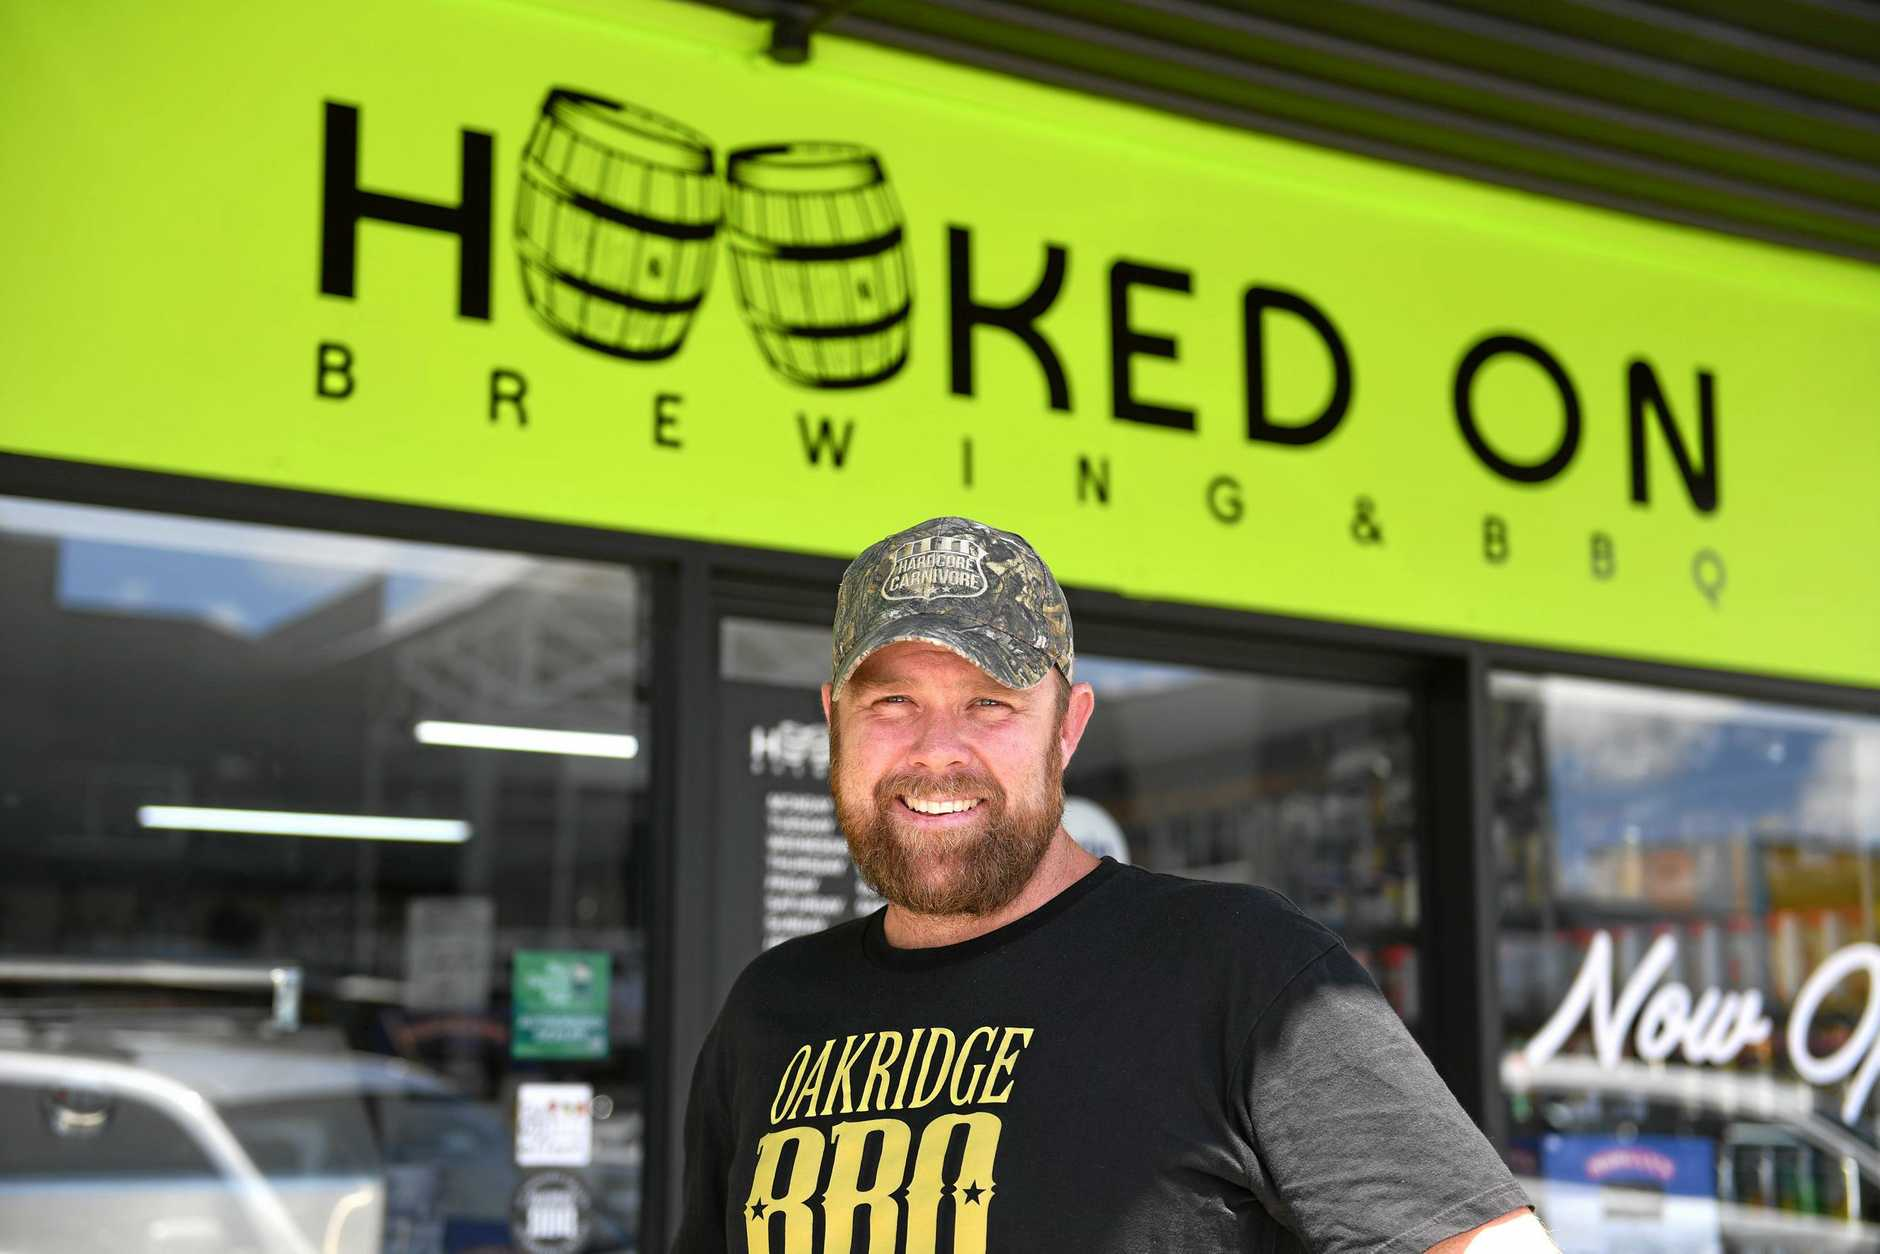 Hooked on Brewing and BBQ co-owner Jay Morgan is excited to be able to ensure Dave's Bait Shop will continue to serve customers after taking over the business and ensuring the fishing store will continue operating in Ballina with it's 75 anniversary approaching.